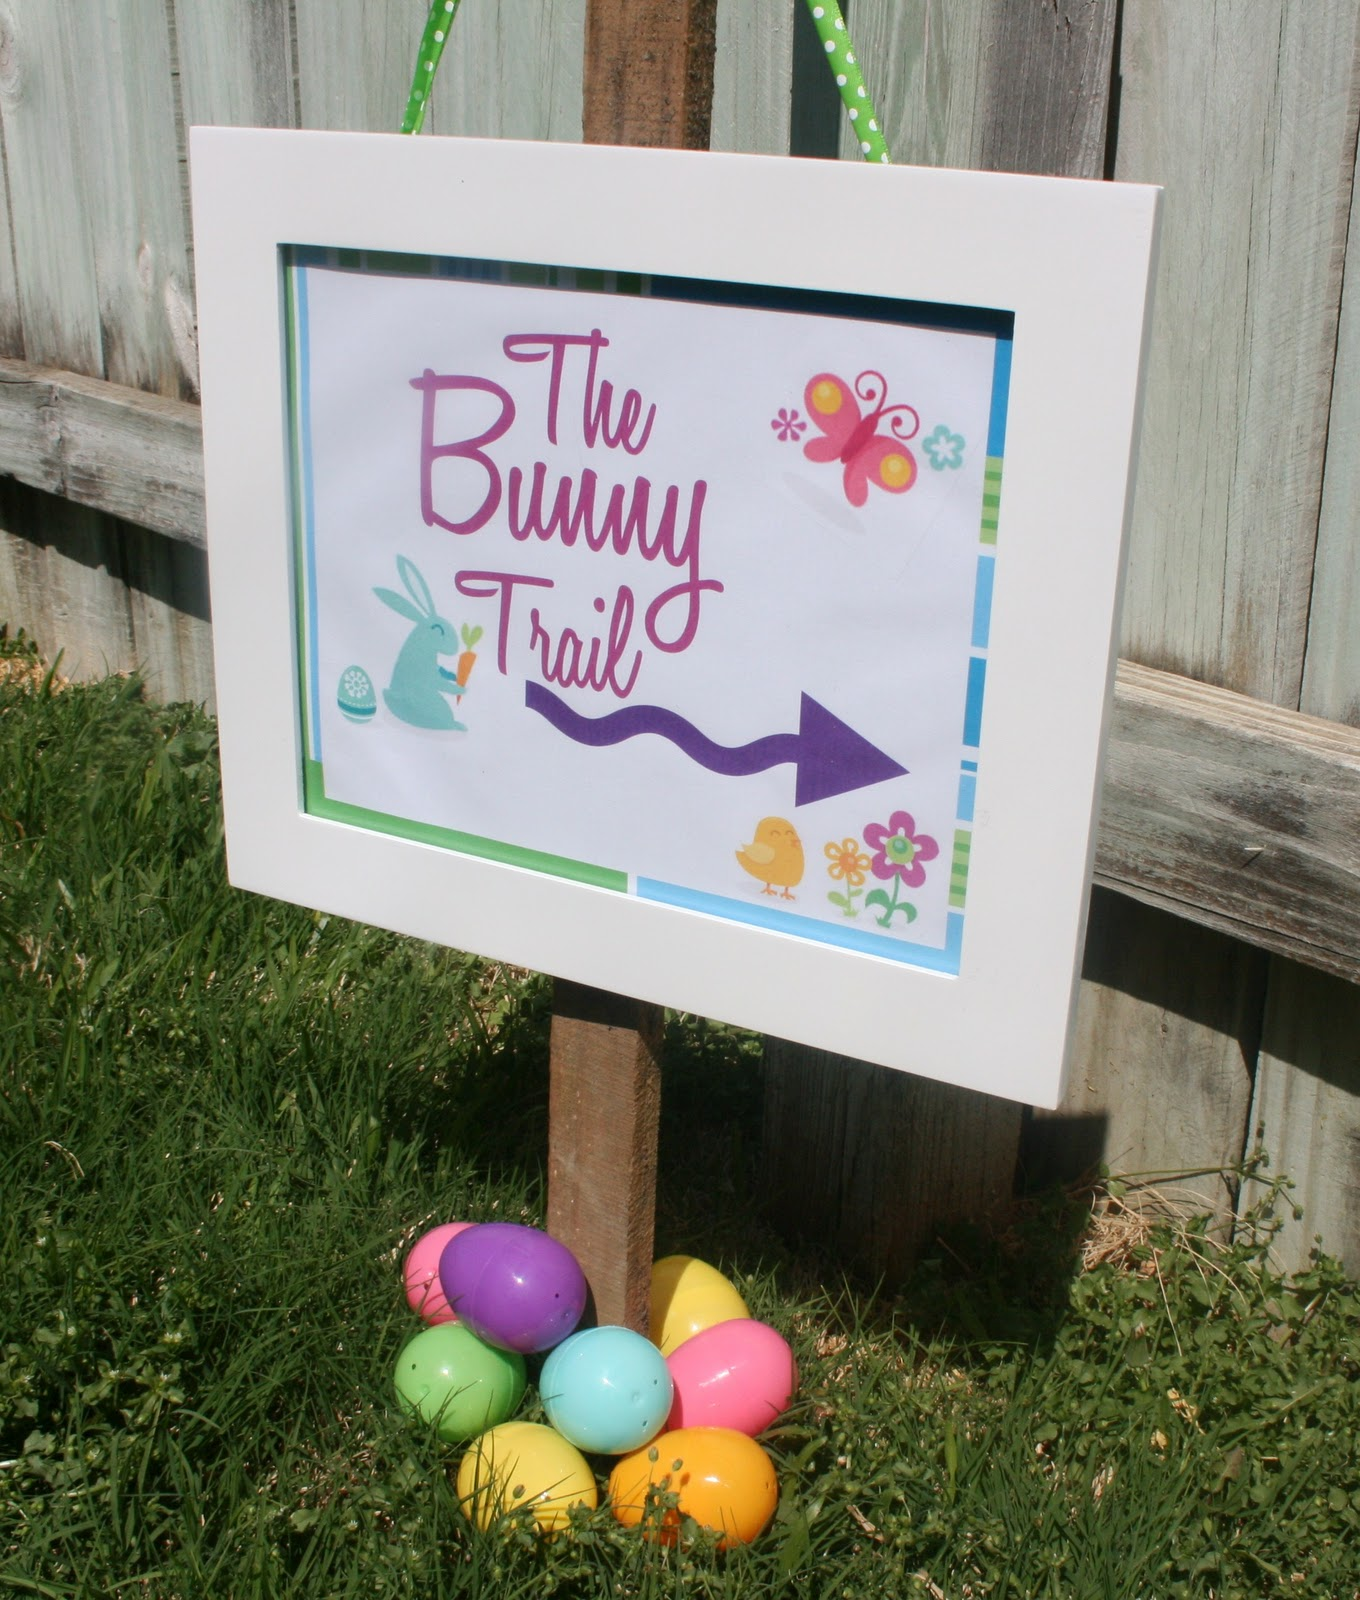 My Life Homemade: Easter Egg Hunt Party Collection